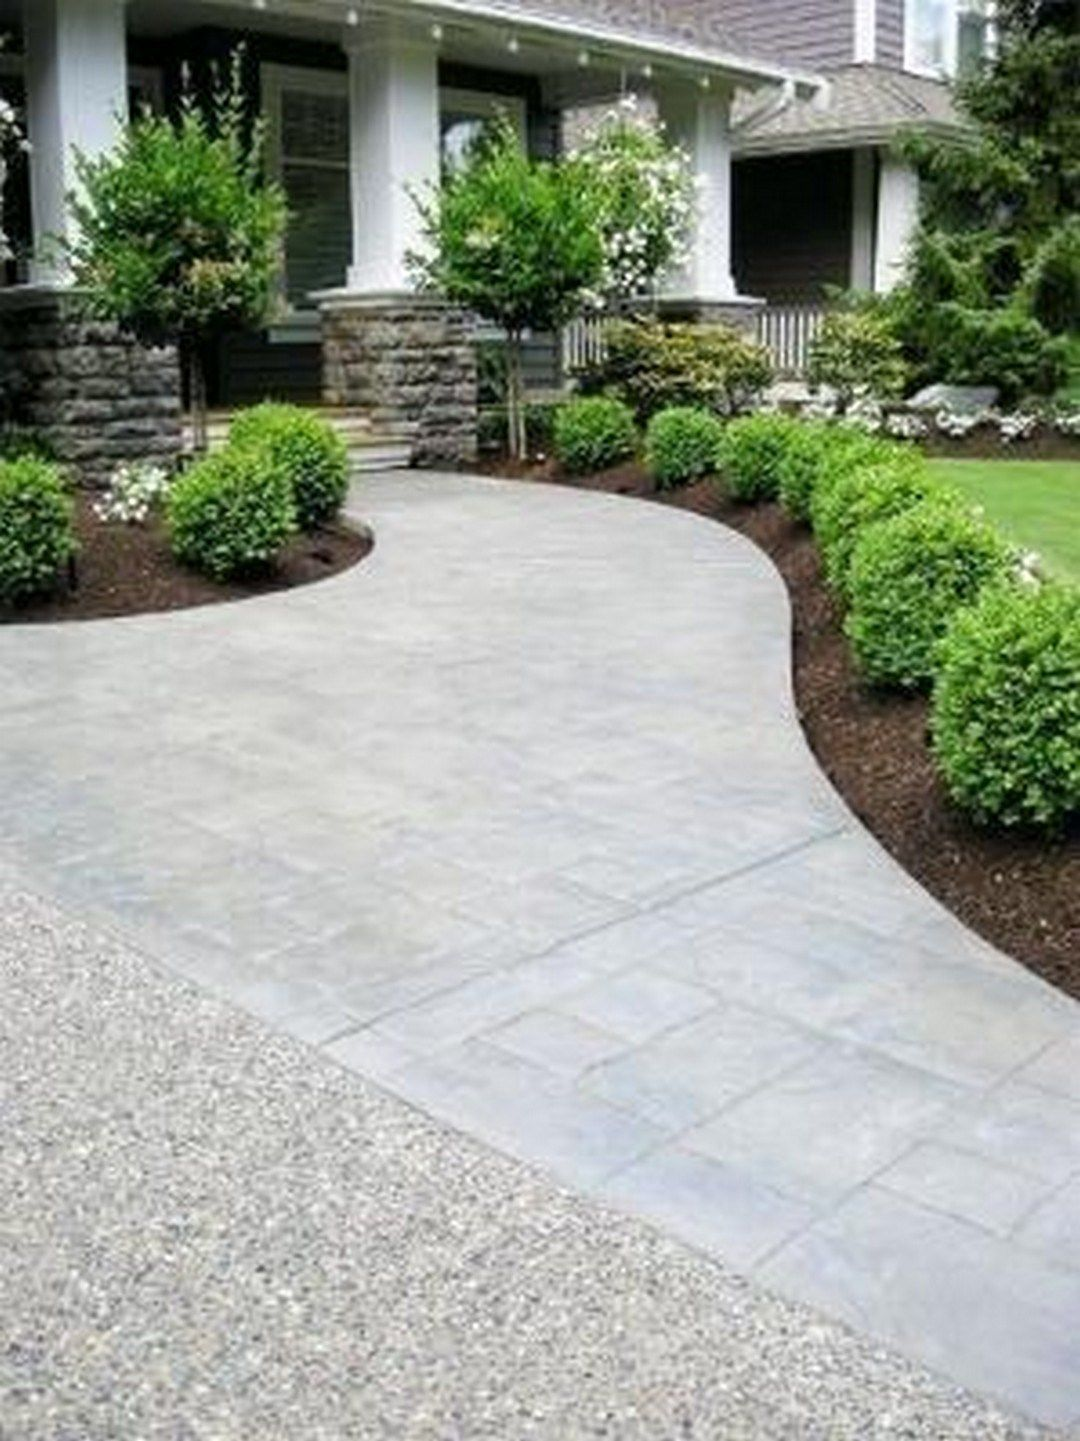 Front yard driveway landscaping ideas   Cheap And Easy Simple Front Yard Landscaping Ideas